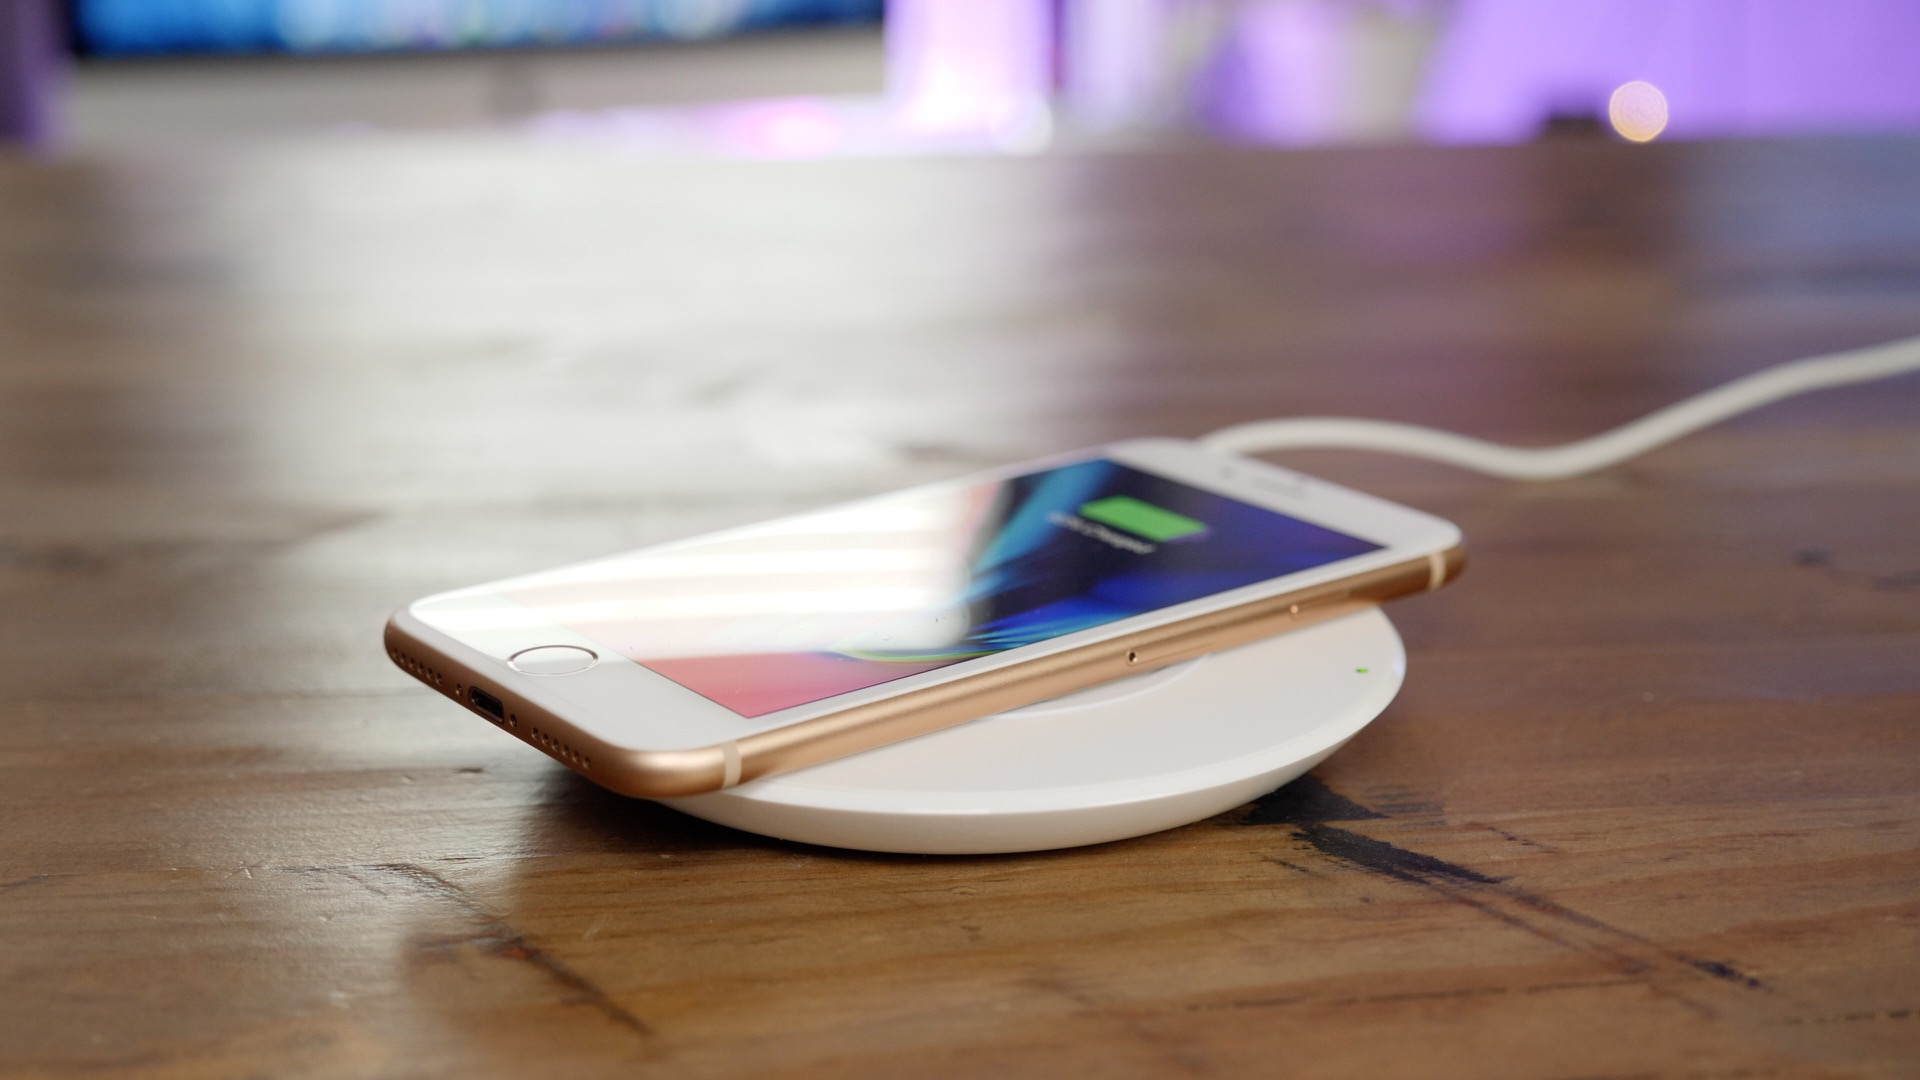 belkin wireless charger iphone x  Hands-on: Qi wireless charging options for iPhone 8 and iPhone X ...